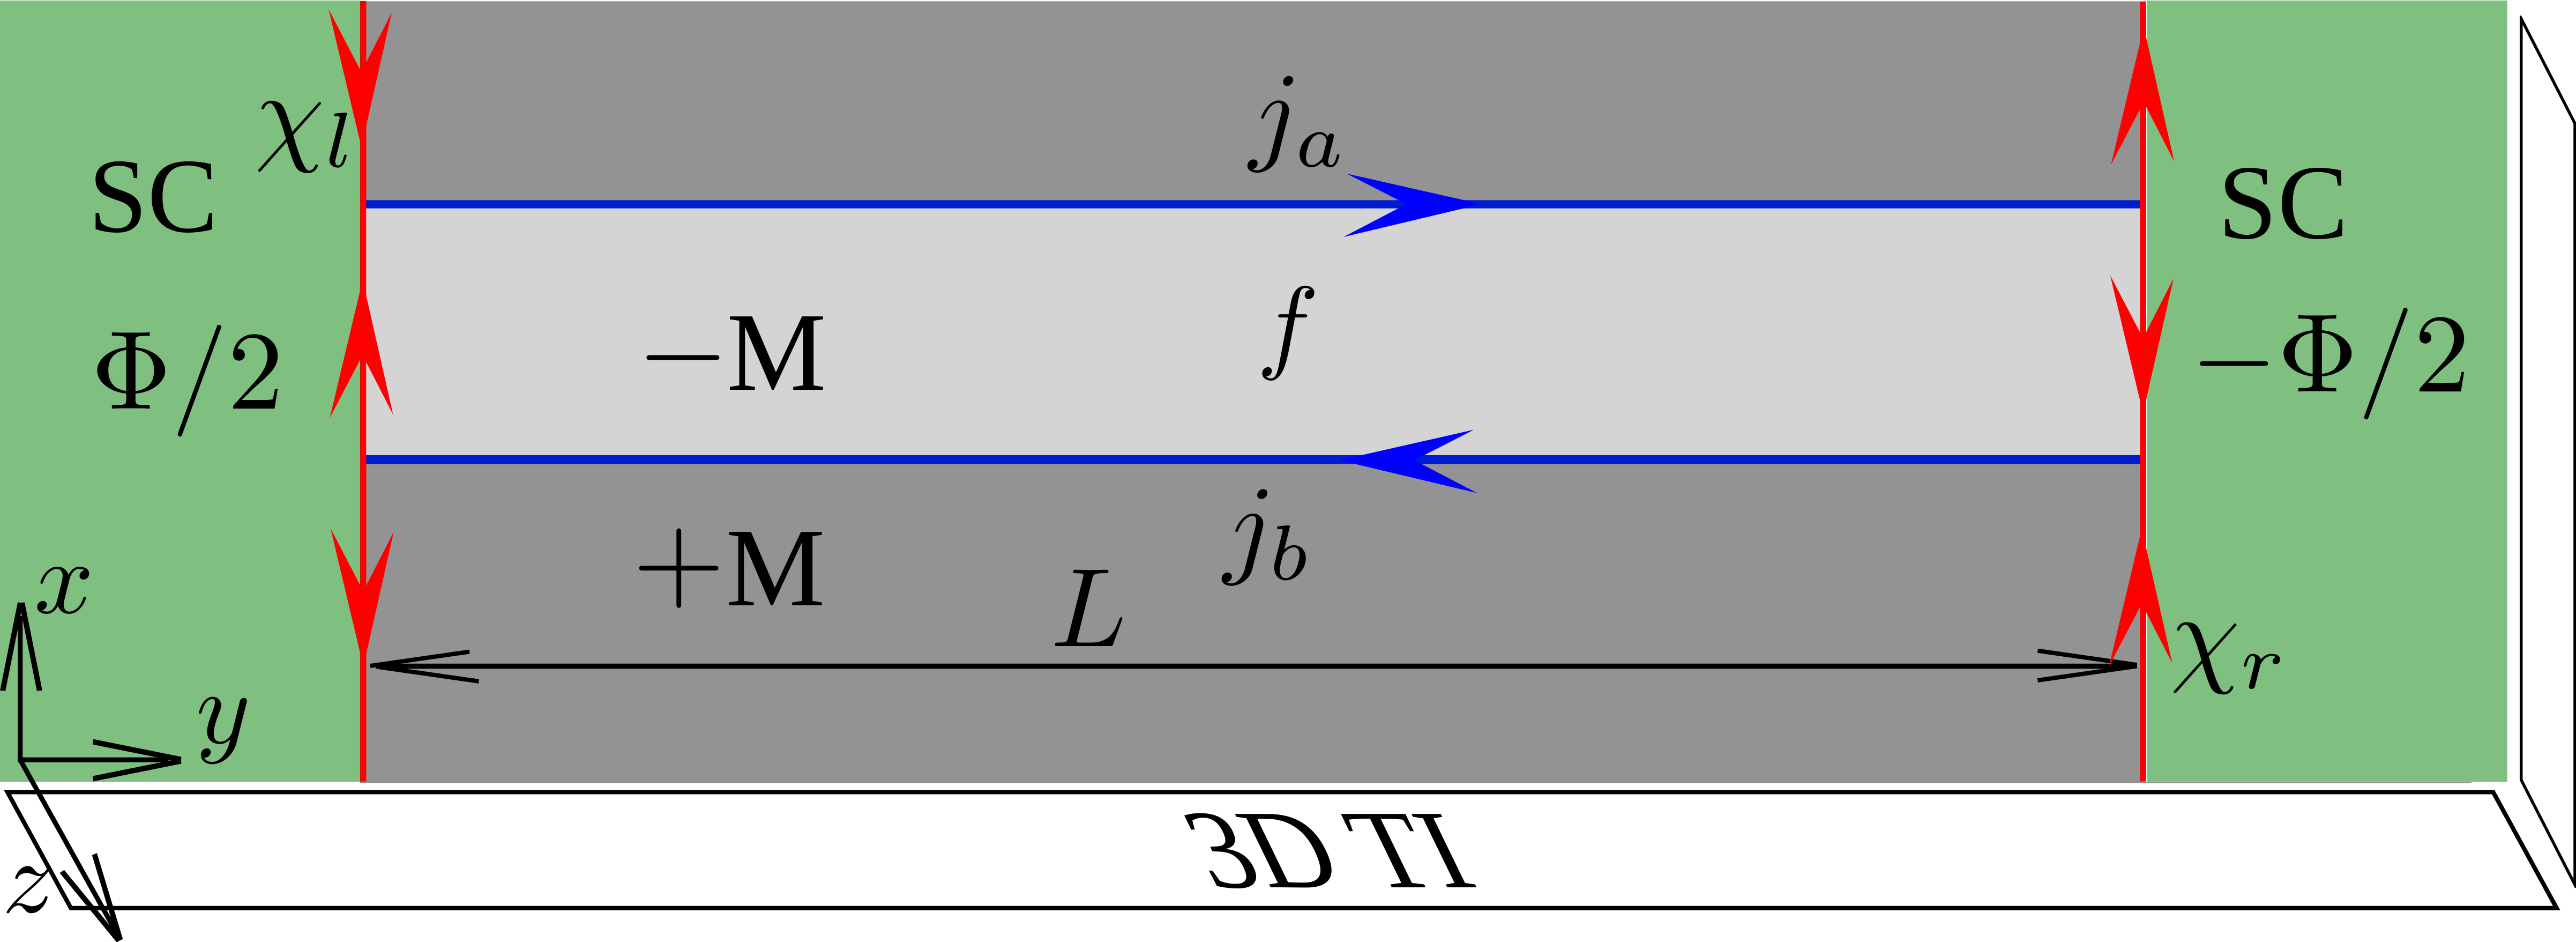 Scheme of transparent Josephson junction on the surface of 3D topological insulator. Red lines stand for gapless Majorana fermion channels and arrows reflect chiralities. Superconducting electrodes, marked as green, have phase difference